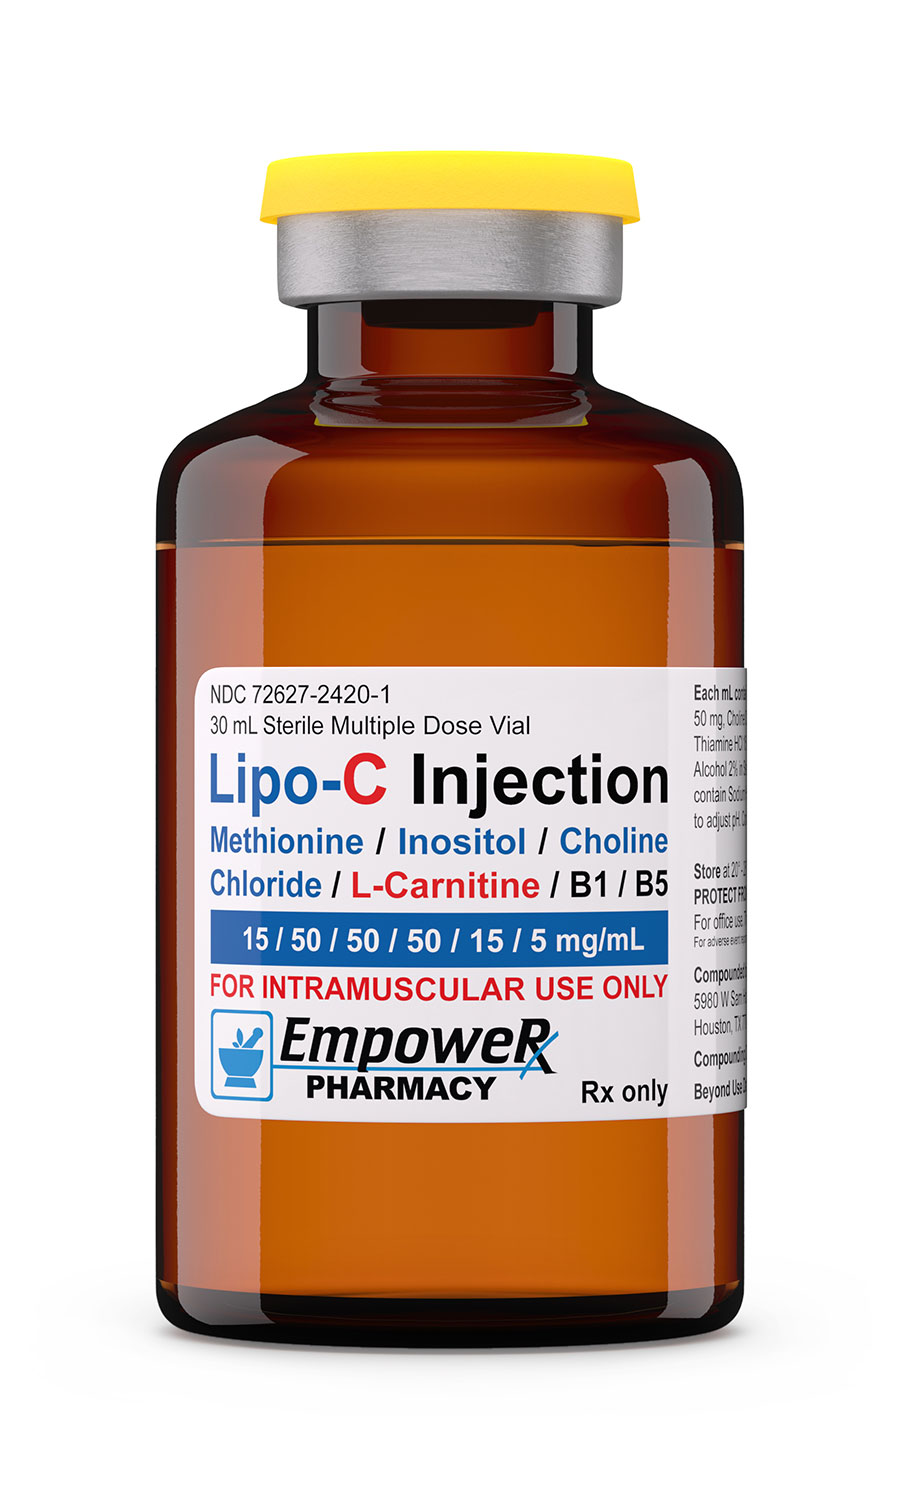 Lipo-C-Injection